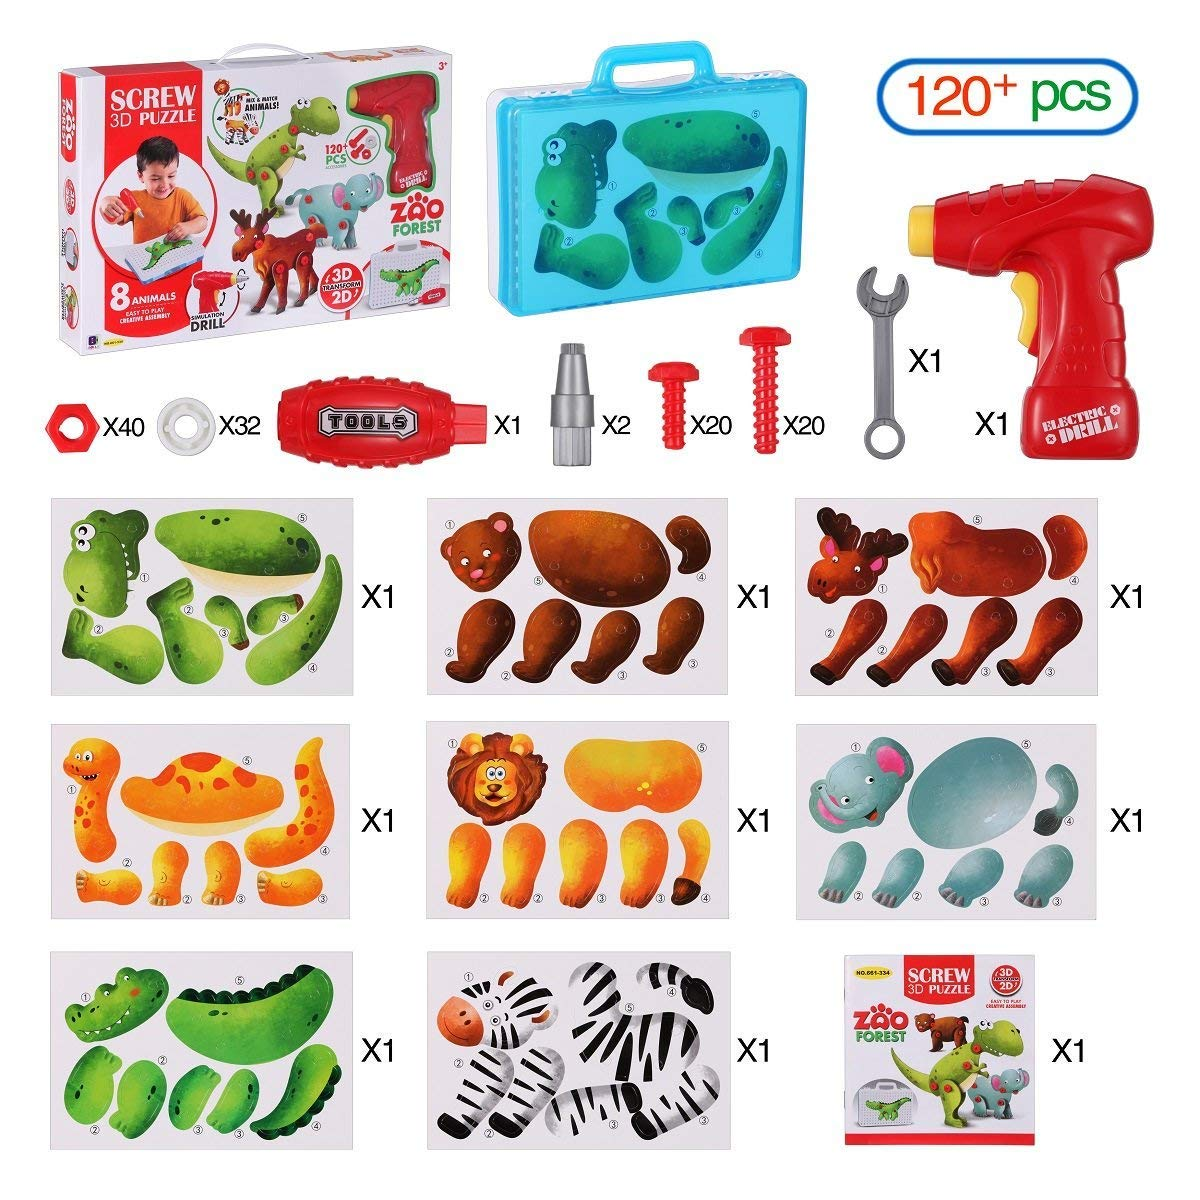 3D Building Puzzles with Drill Screws Tools, 8 Different Animals Creative Construction Kit Take Apart Toy, Best Learning Educational Toys for Kids 3-12 Years Old